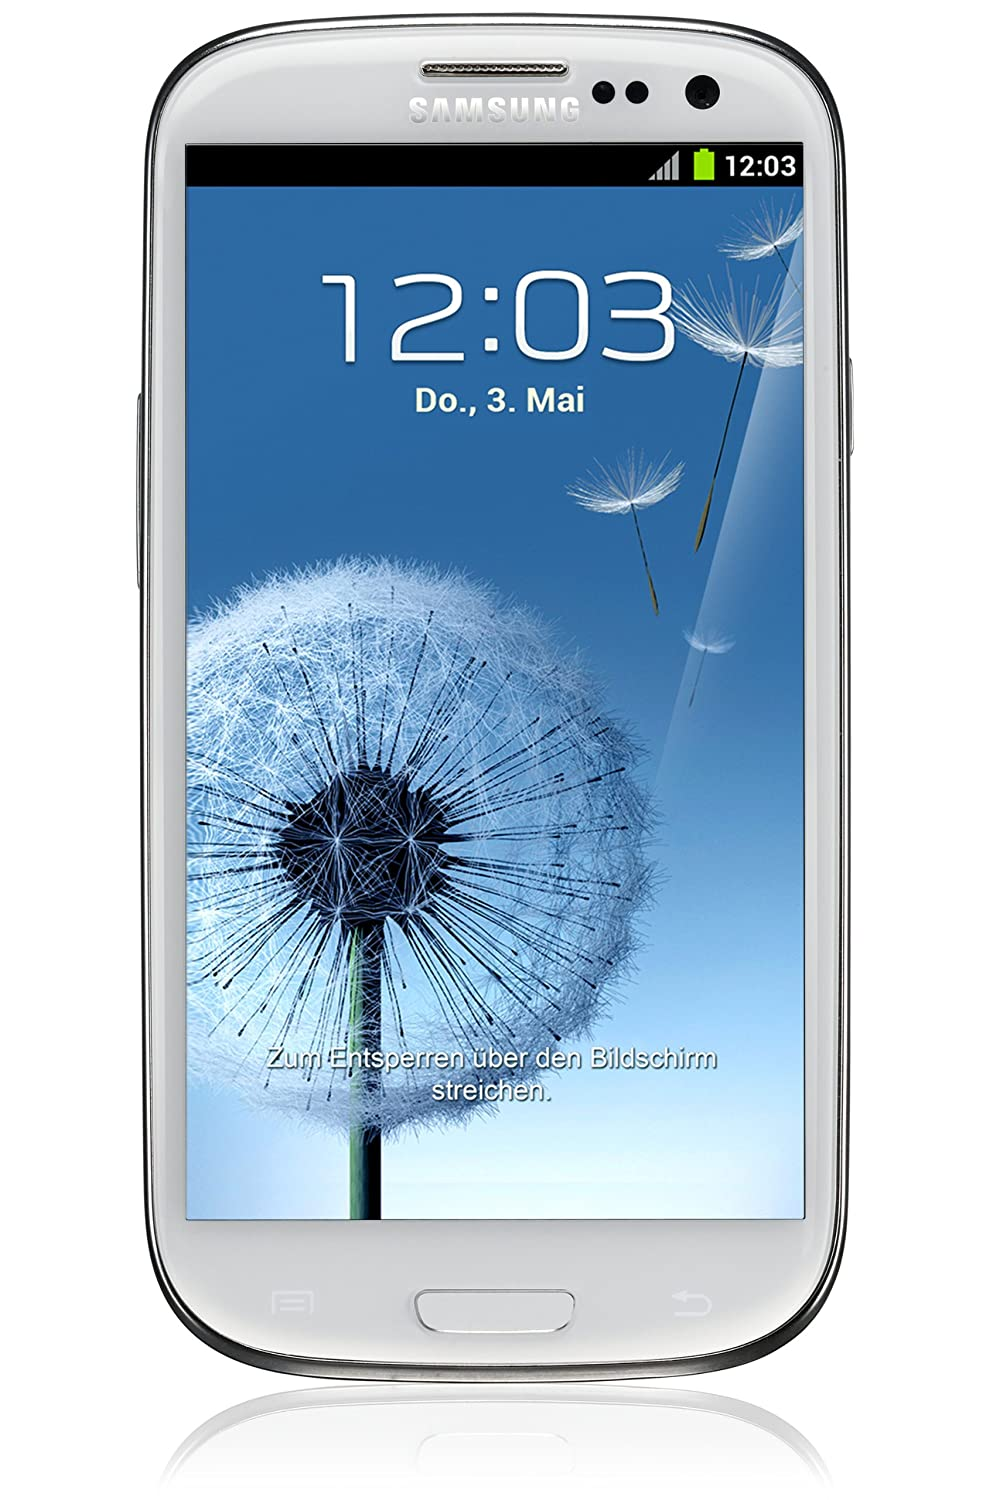 Amazon.com: Samsung Galaxy S III I9300 16Gb White WiFi Android Unlocked  Cell Phone: Cell Phones & Accessories